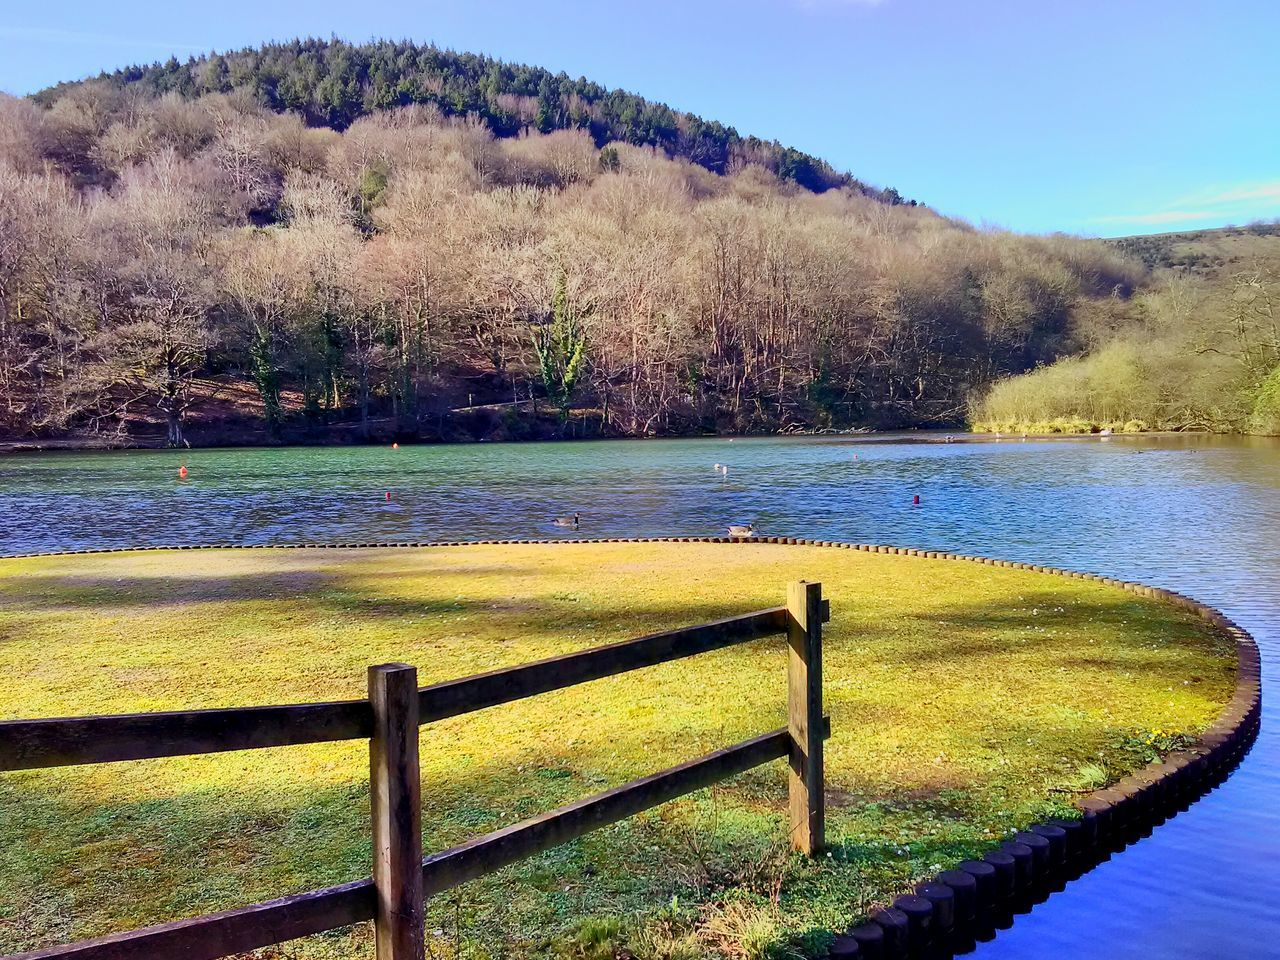 Margam Lake Lakeview Tranquil Scene Beauty In Nature Tranquility Tree Scenics Moss Sunlight Nature Day Water Outdoors Landscape Sky Colour Of Life Bushes Trees